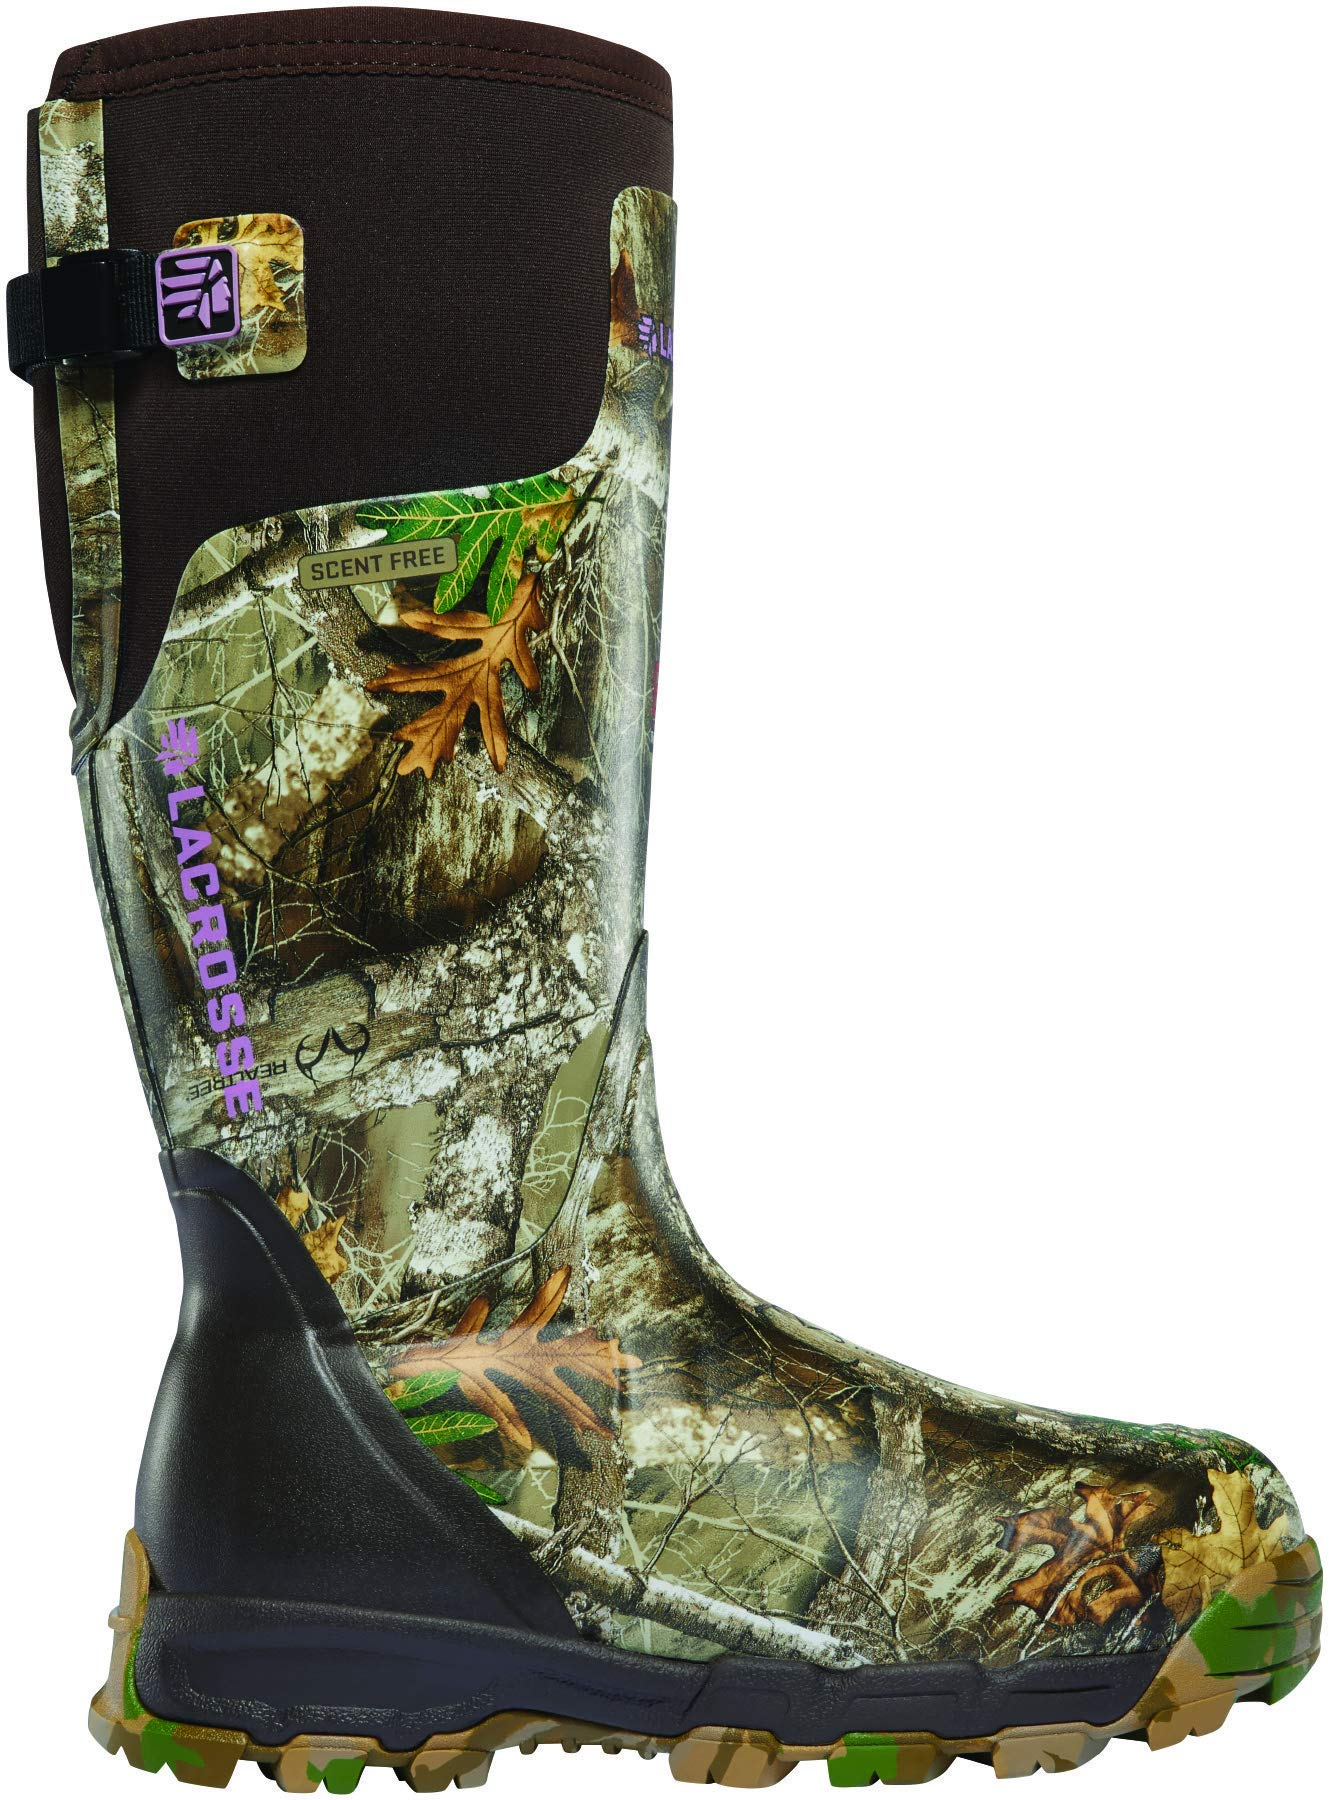 Lacrosse 376028 Women's Alphaburly Pro 15'' 800G Hunting Boot, Realtree Edge - 11 M US by Unknown